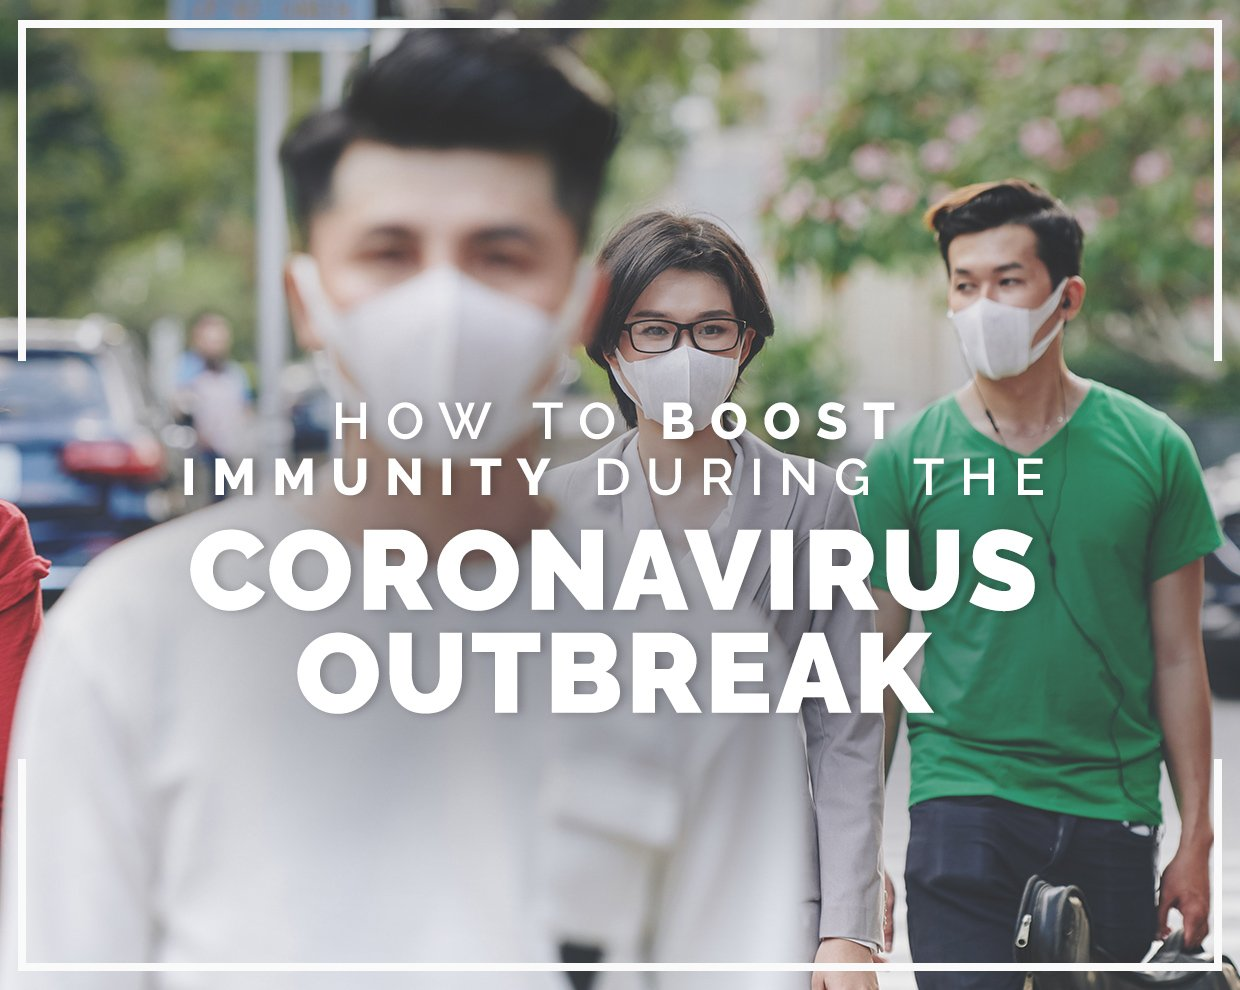 How to boost immunity during the coronavirus outbreak